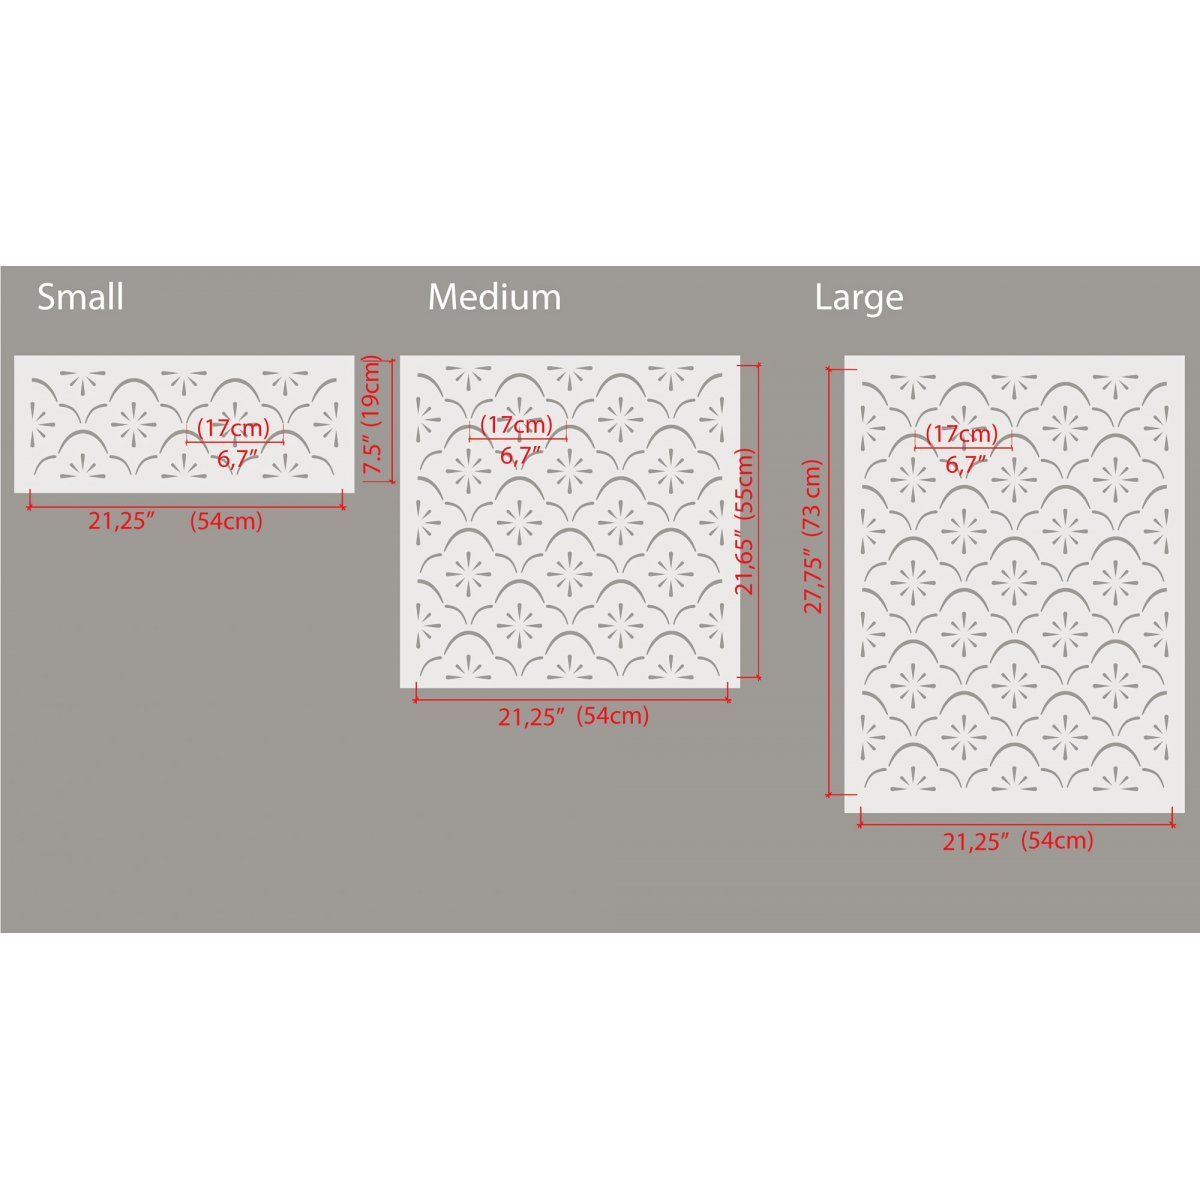 MOROCCAN FLOWER / Reusable Allover Large Wall Stencils for Painting